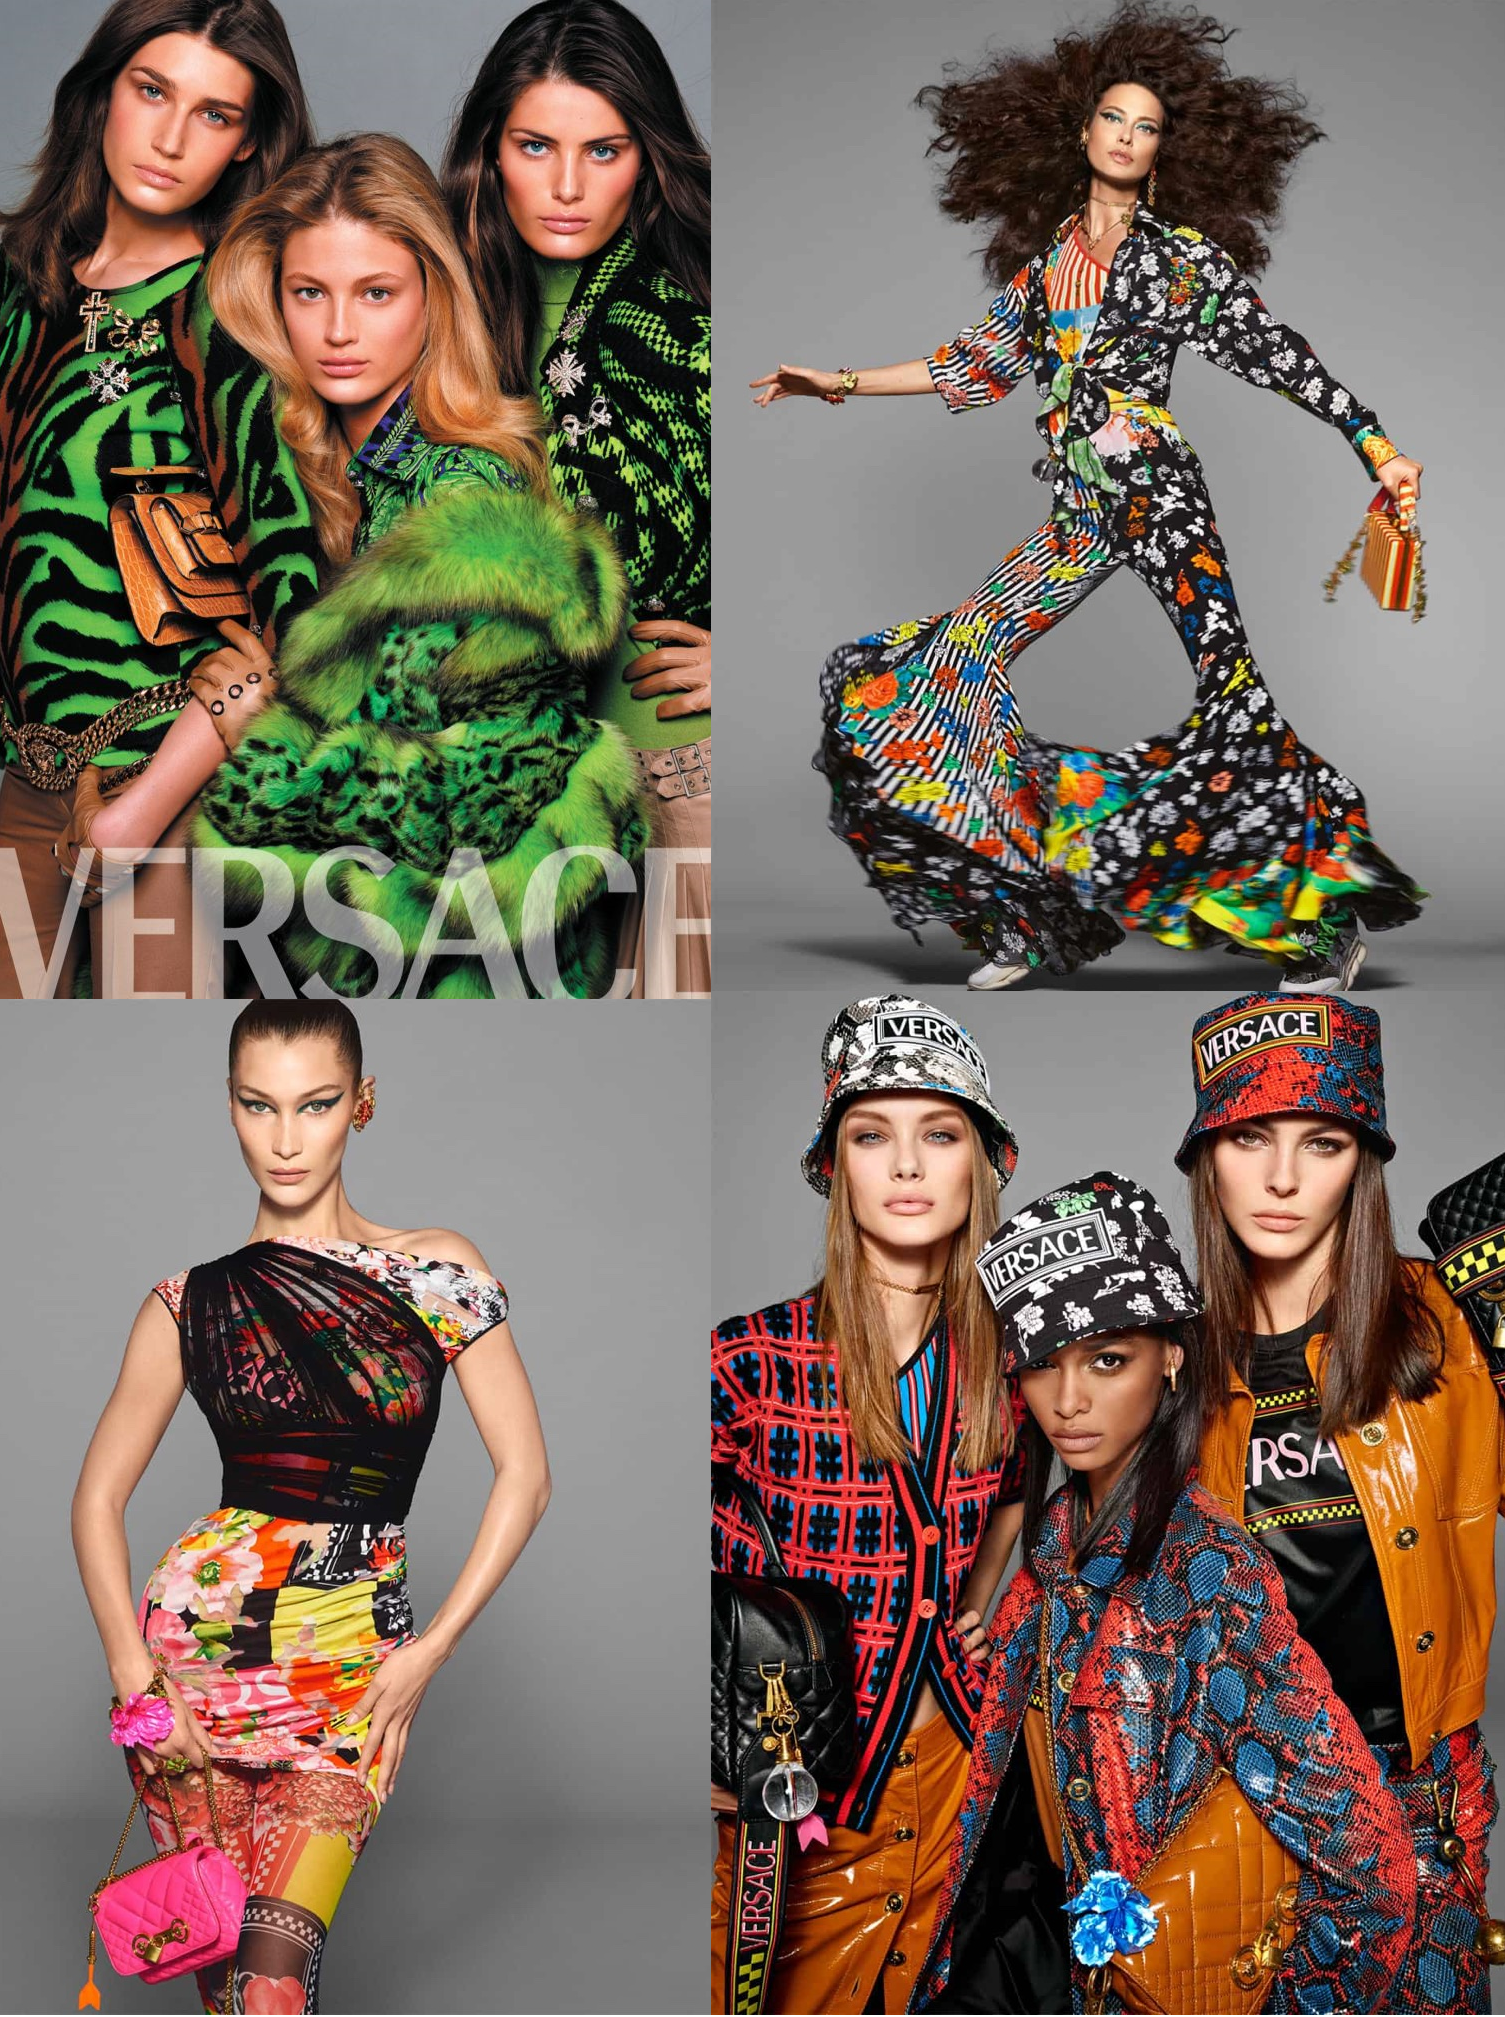 Versace Spring 2019 Campaign by Steven Meisel collage.png